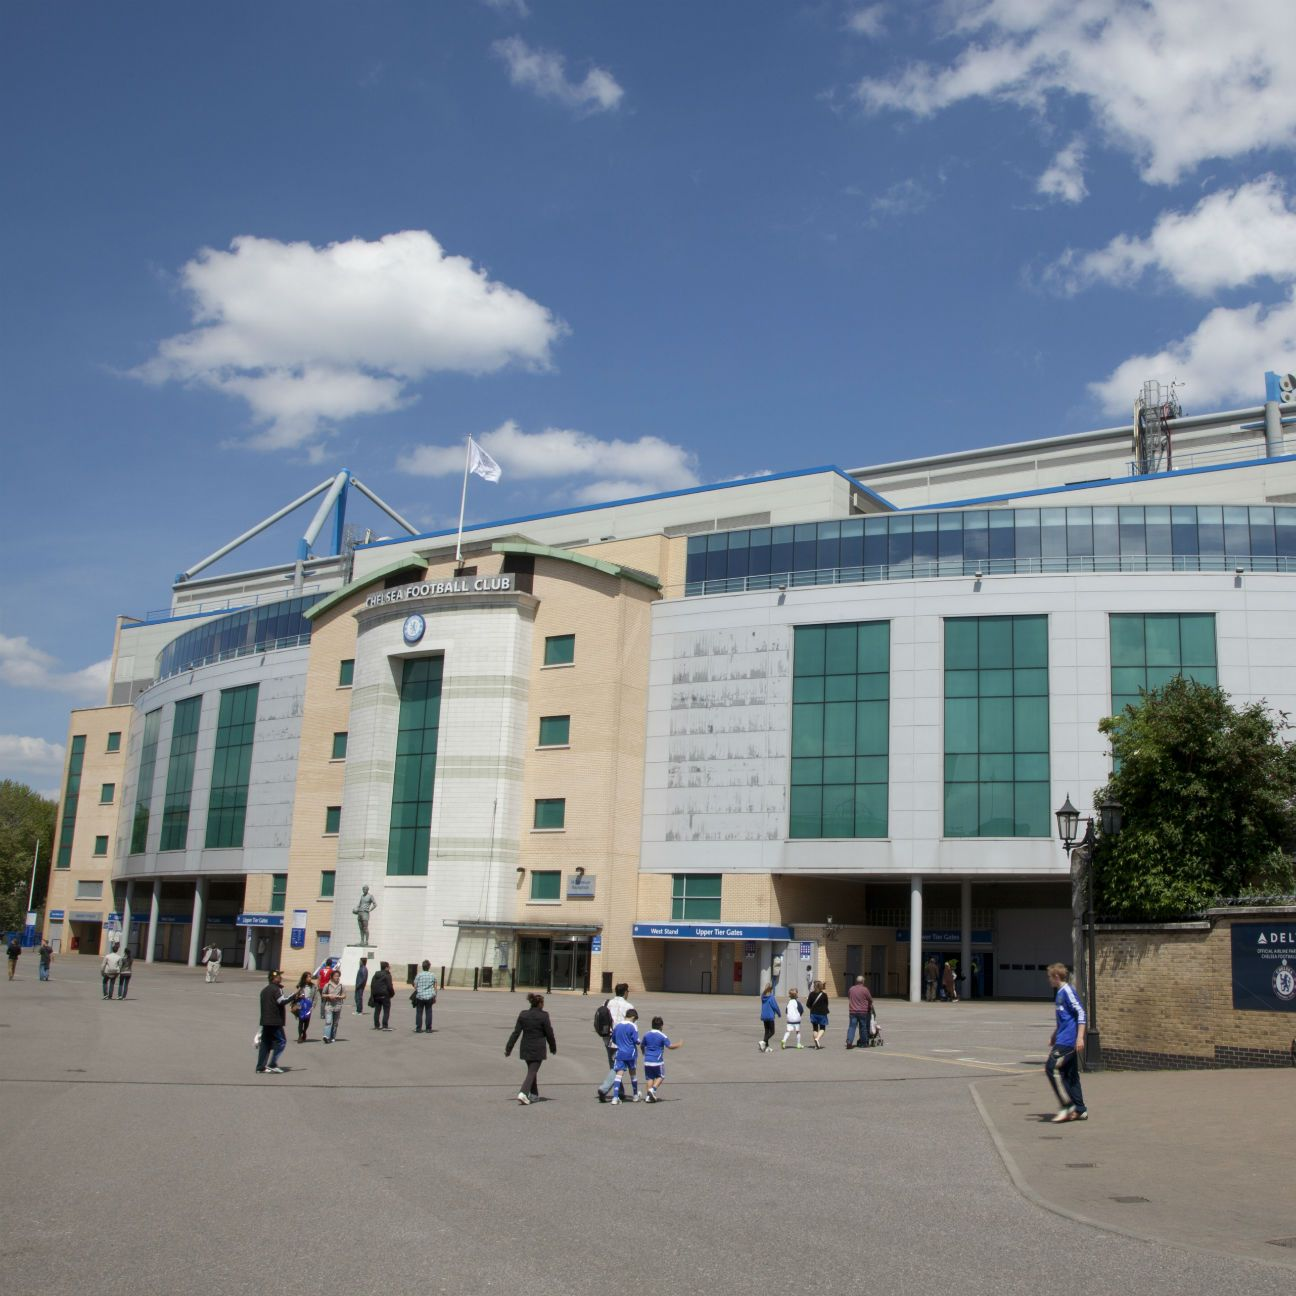 Chelsea's stadium issue appears no way near being resolved.